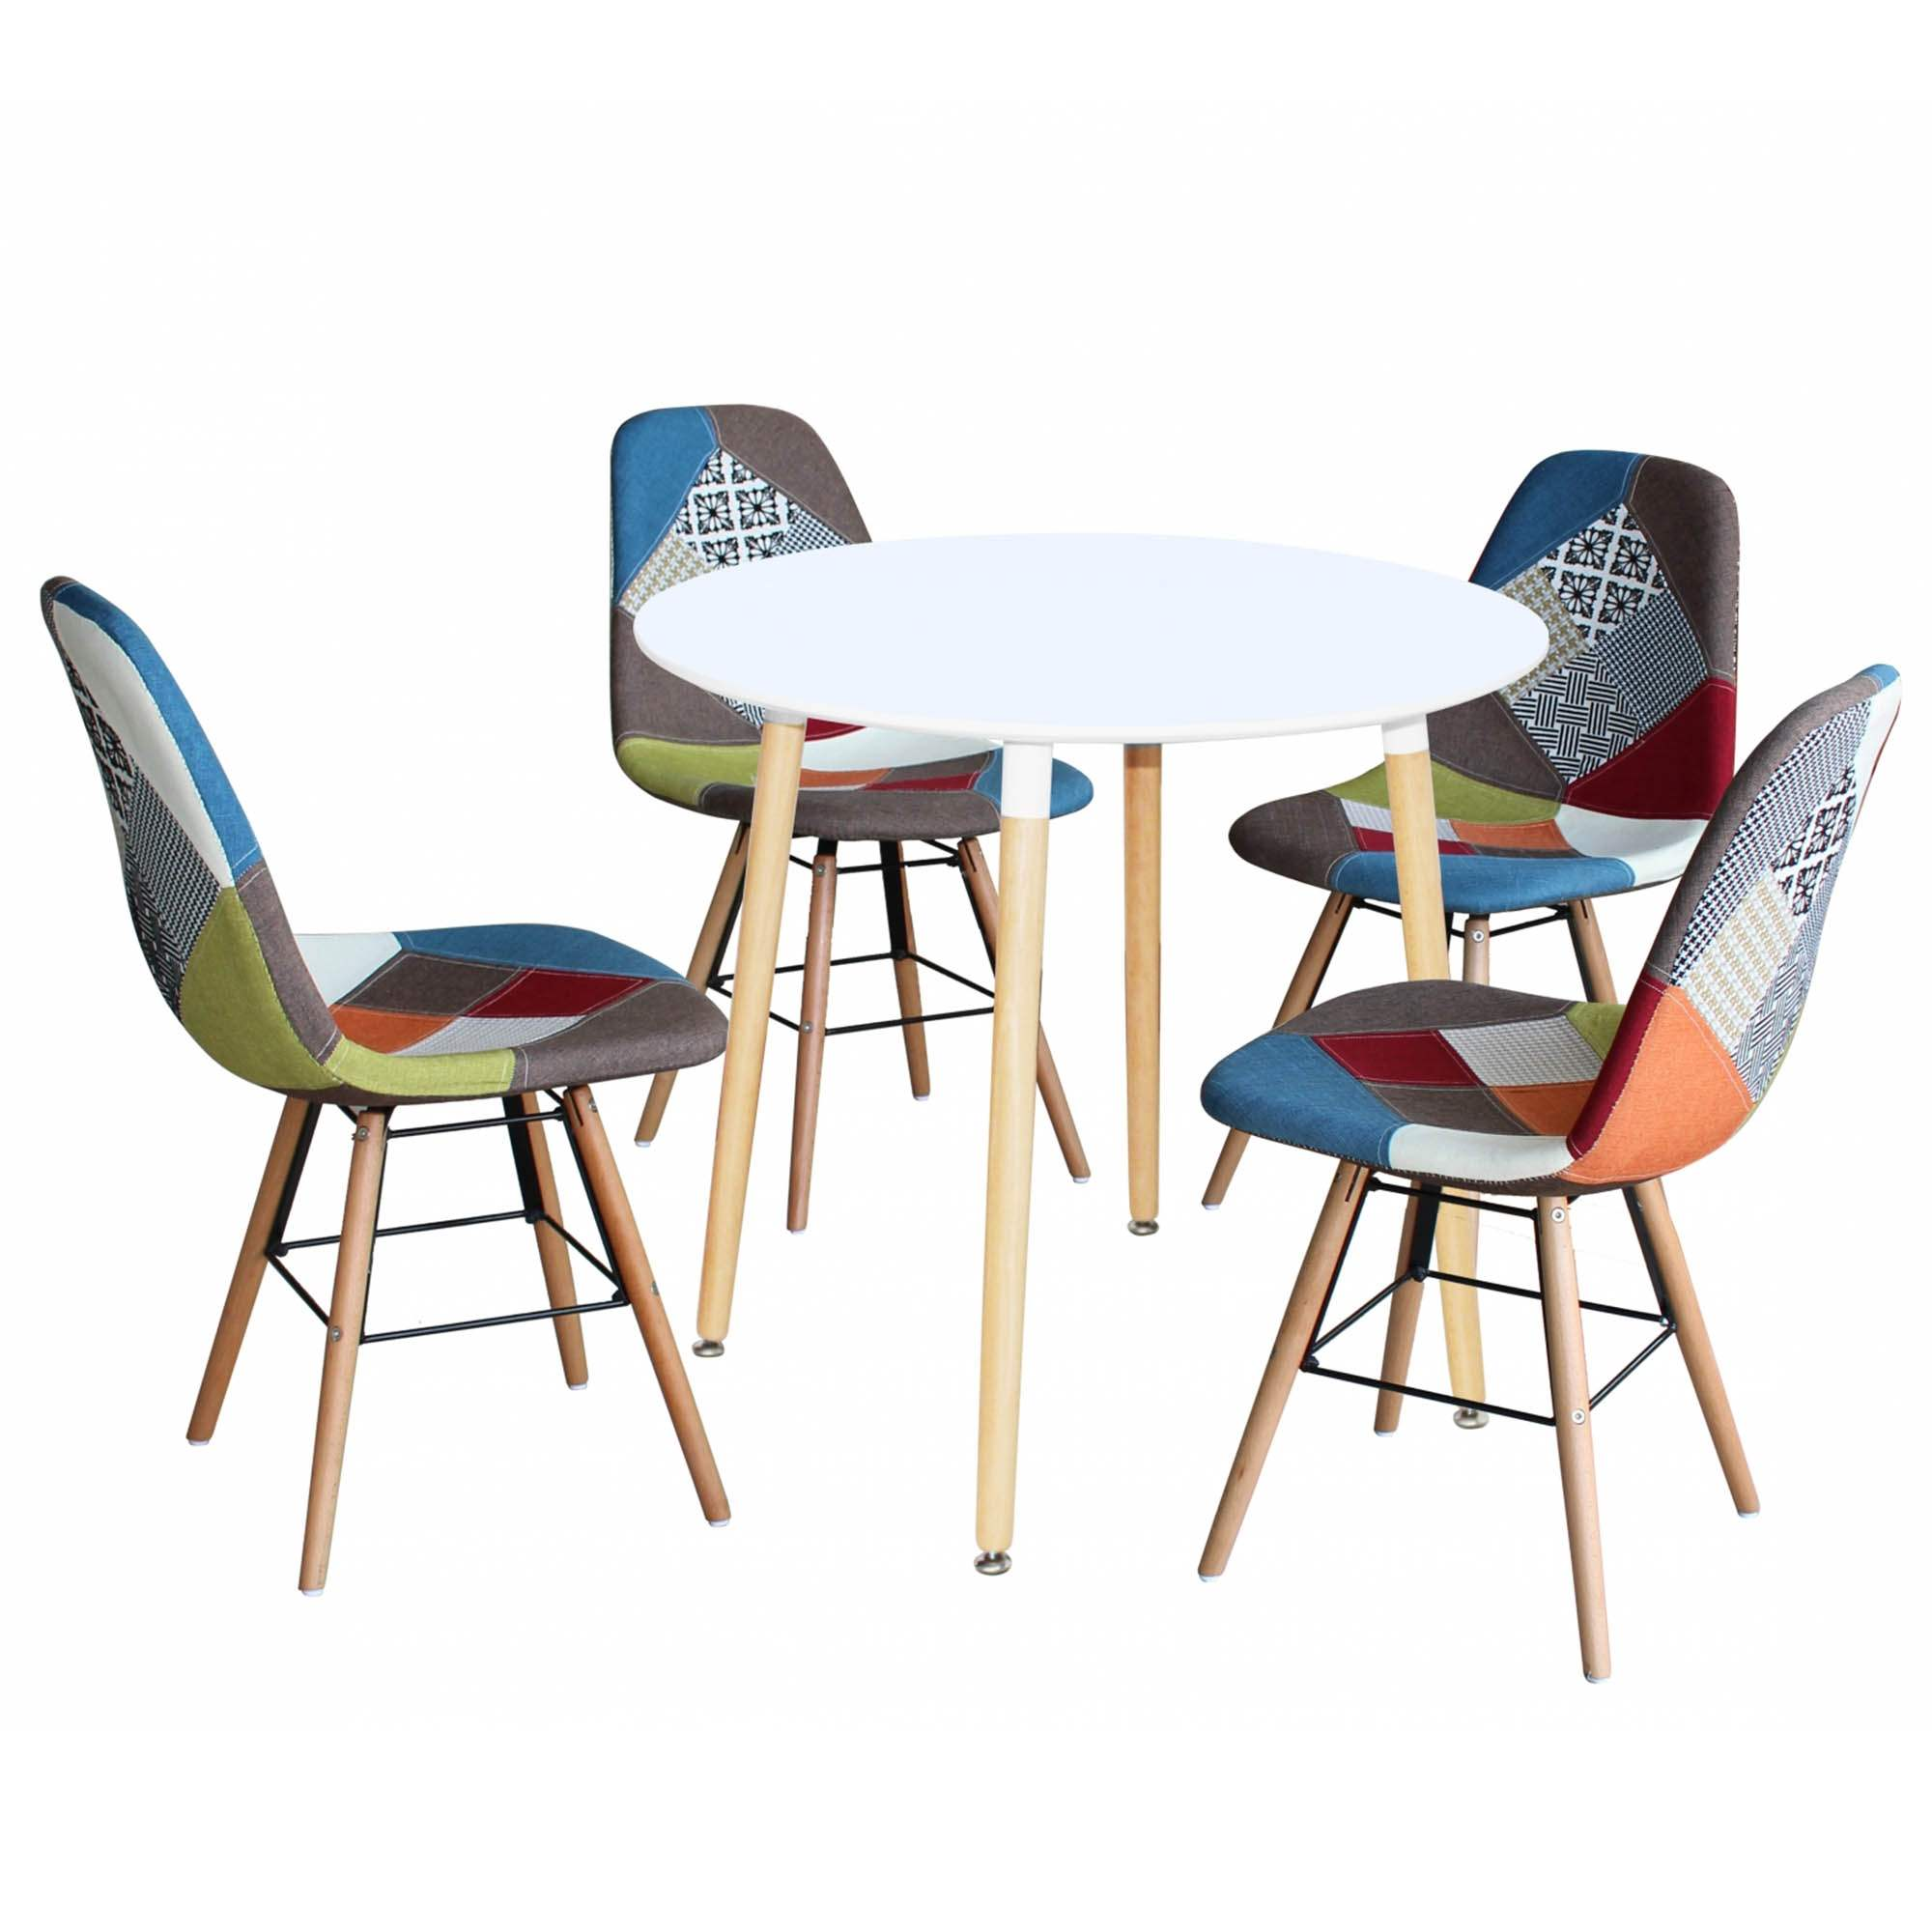 Merveilleux Ensemble Table Ronde RIMMA + 4 Chaise Patchwork Scandinaves